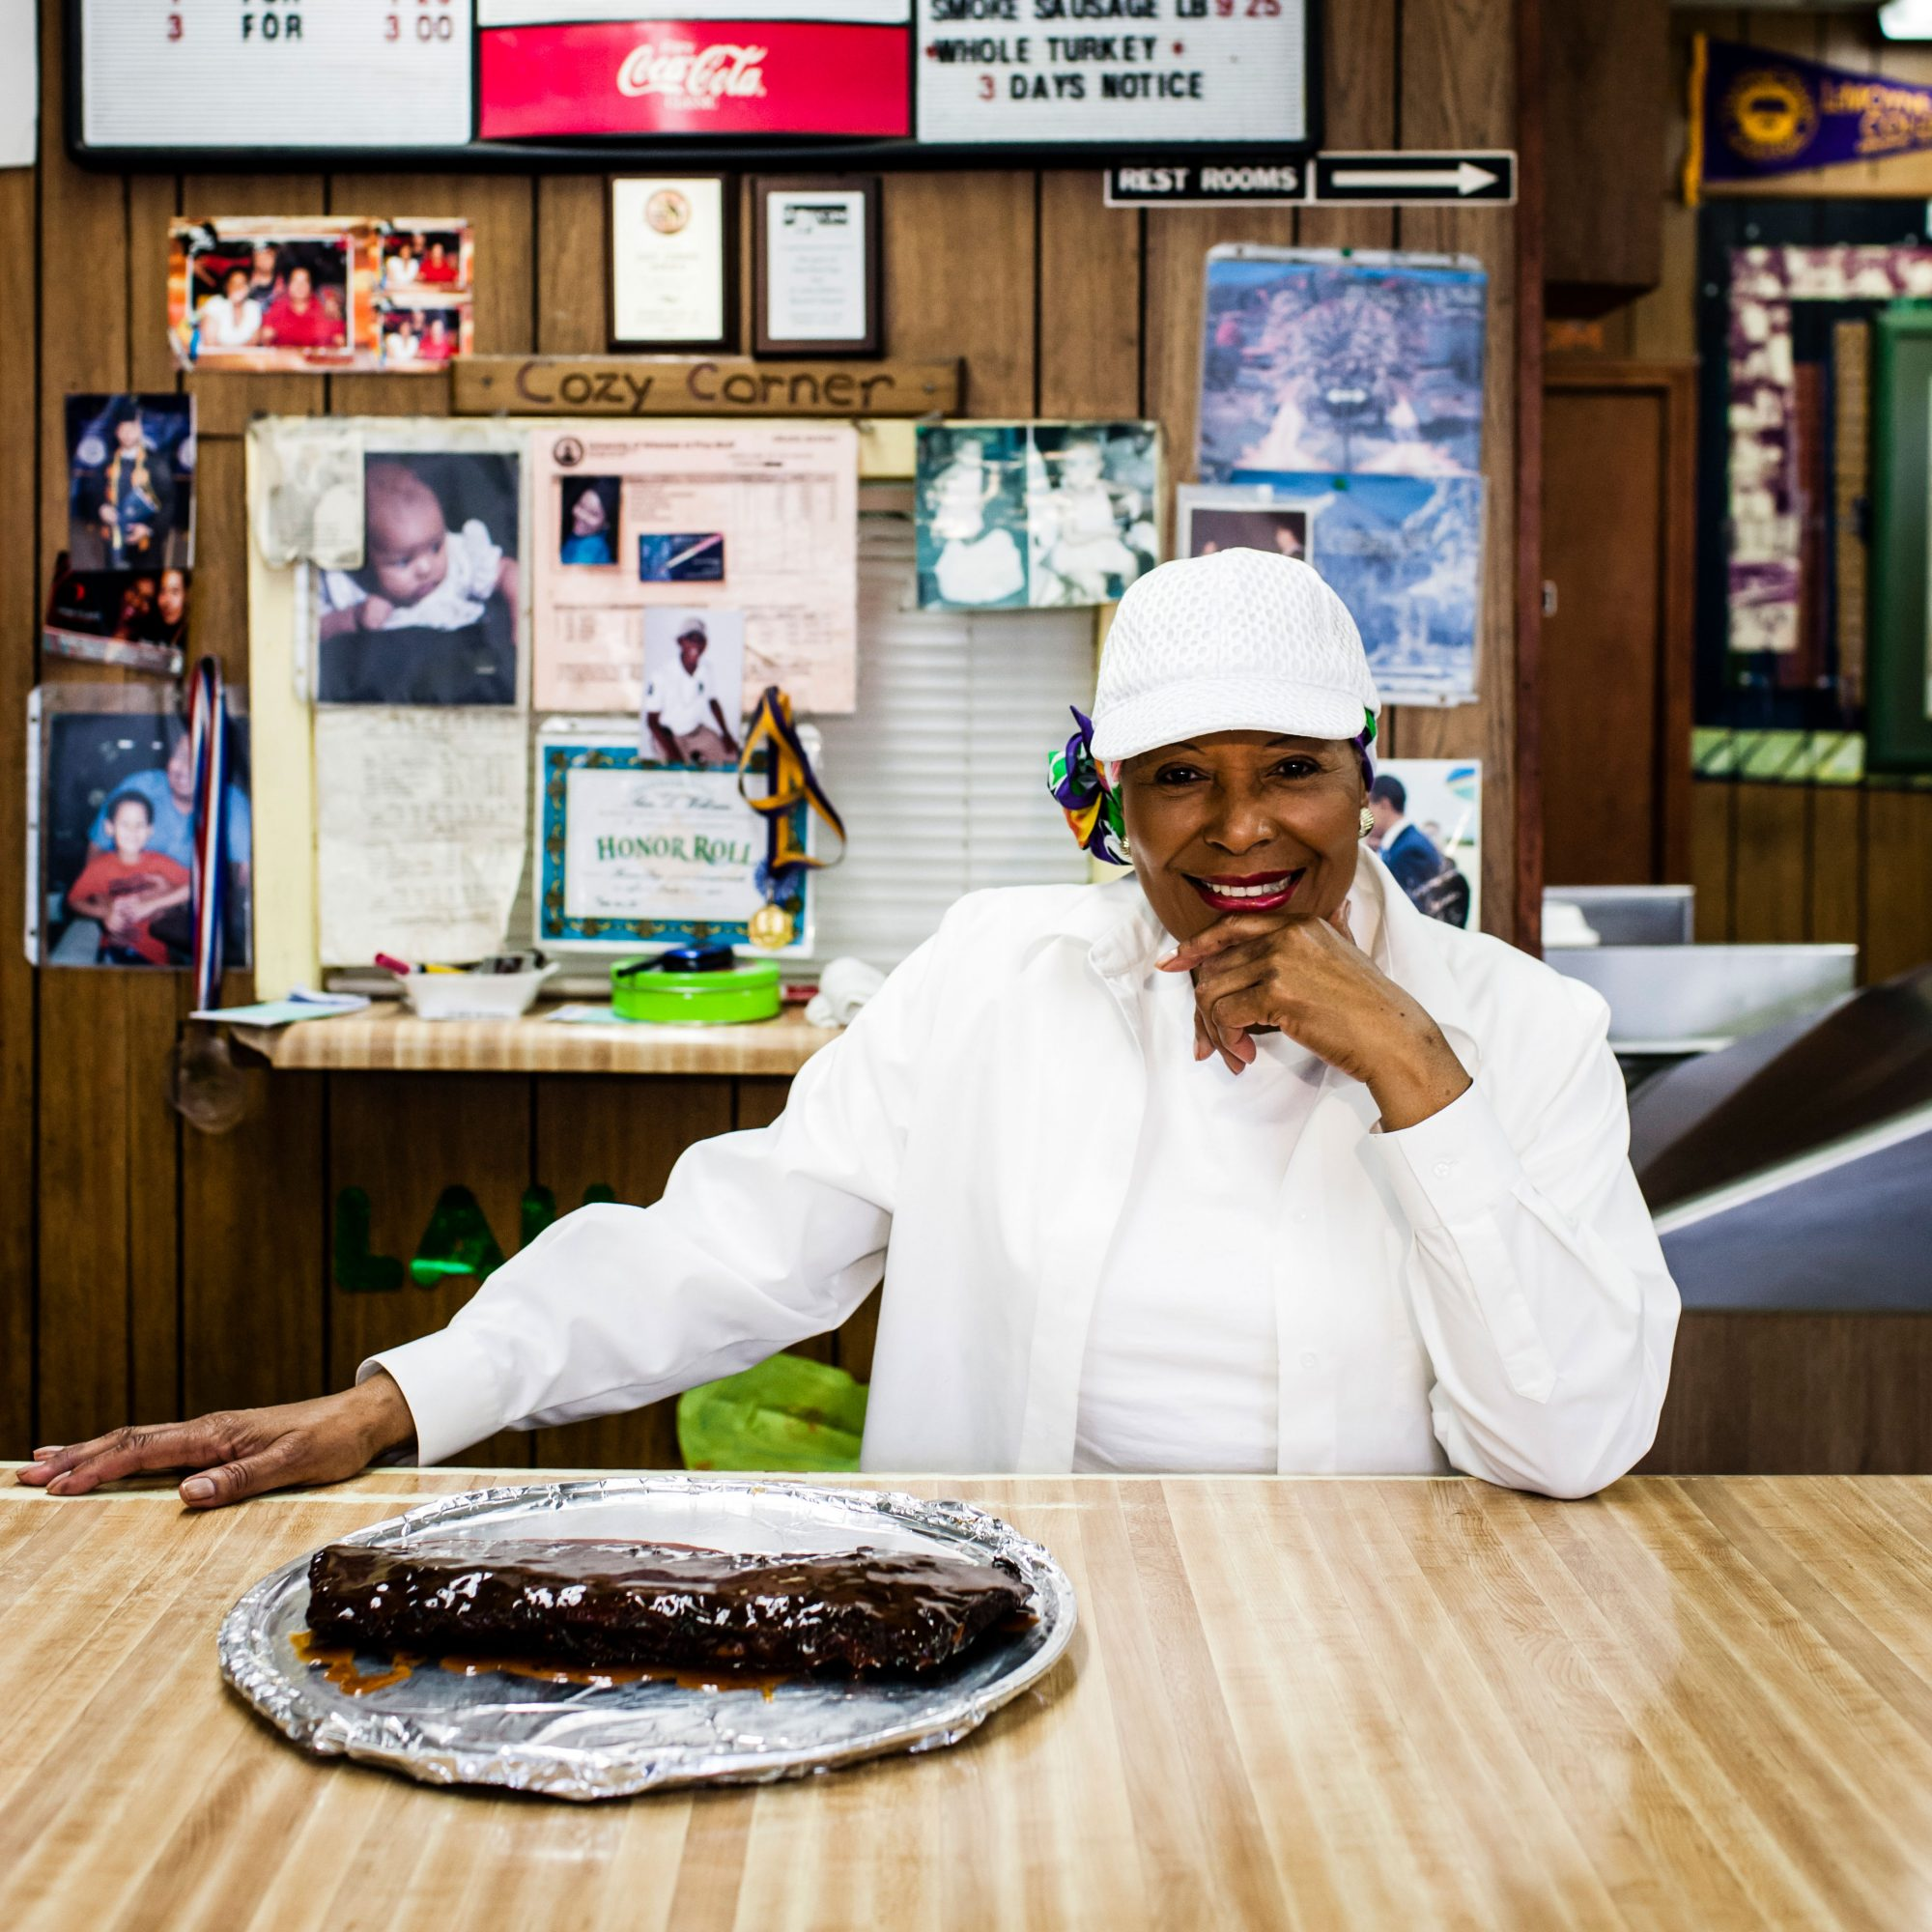 Desiree Robinson of Cozy Corner BBQ Restaurant in Memphis, TN